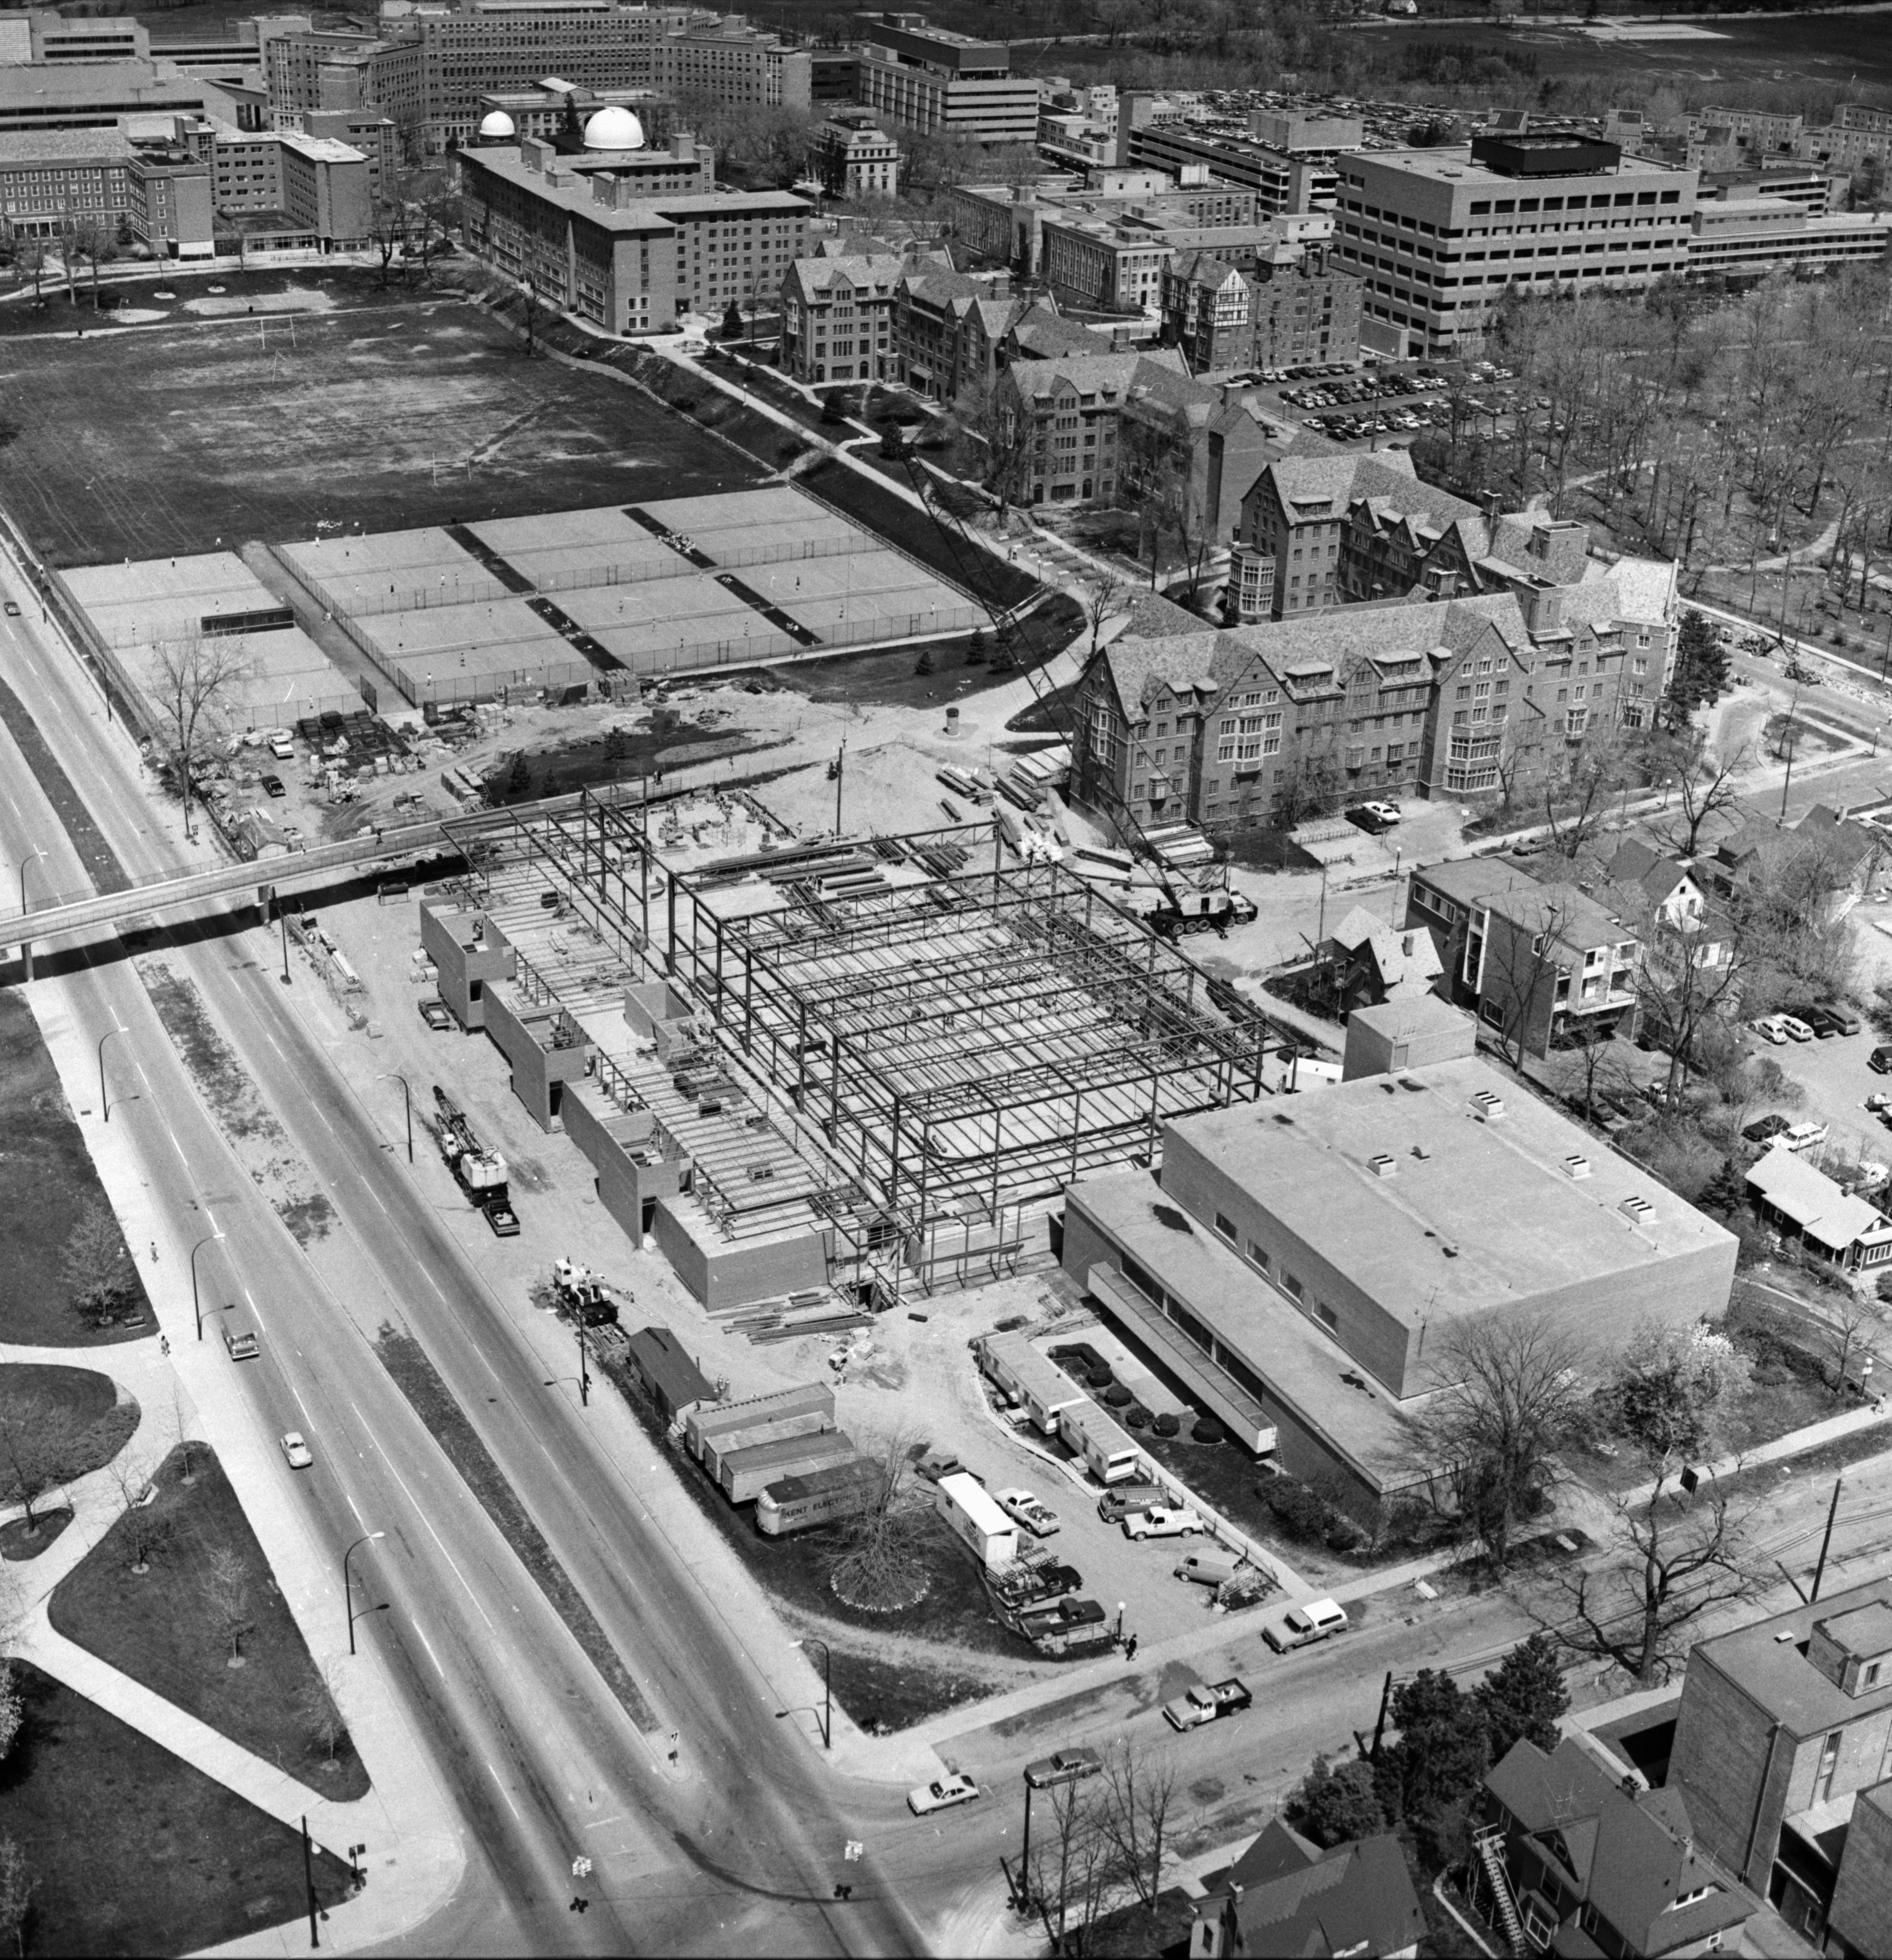 Aerial Photograph of Central Campus Intramural Building, University of Michigan, May 1975 image